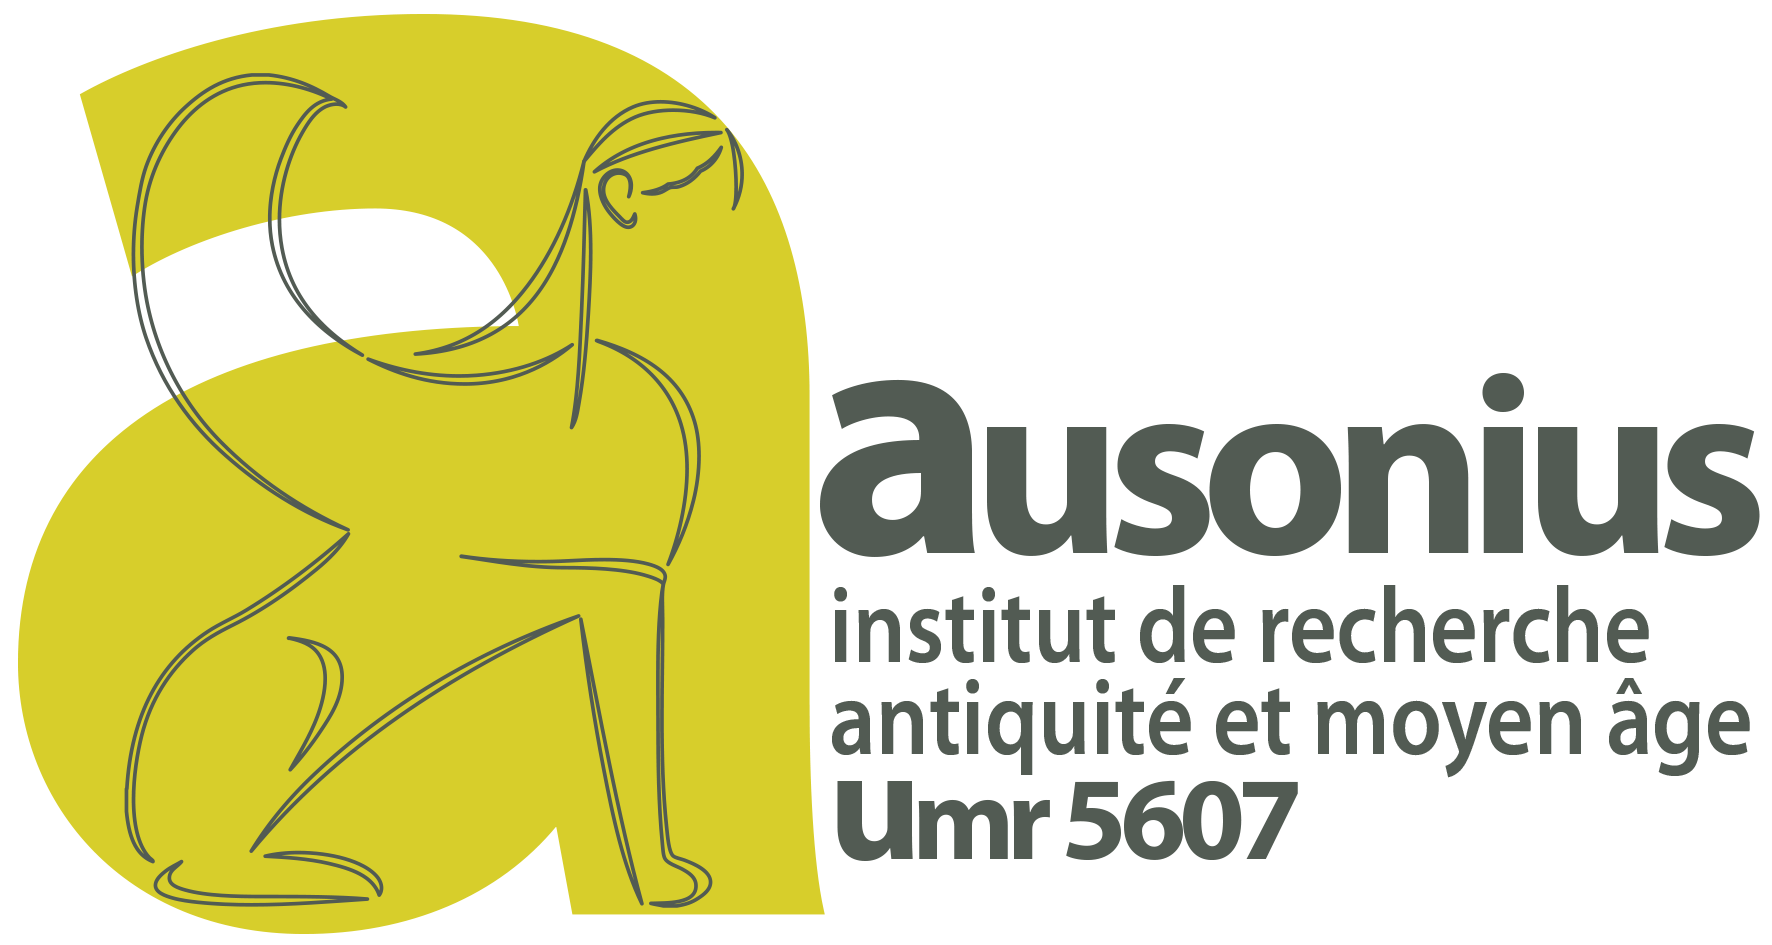 Ausonius Institute logo